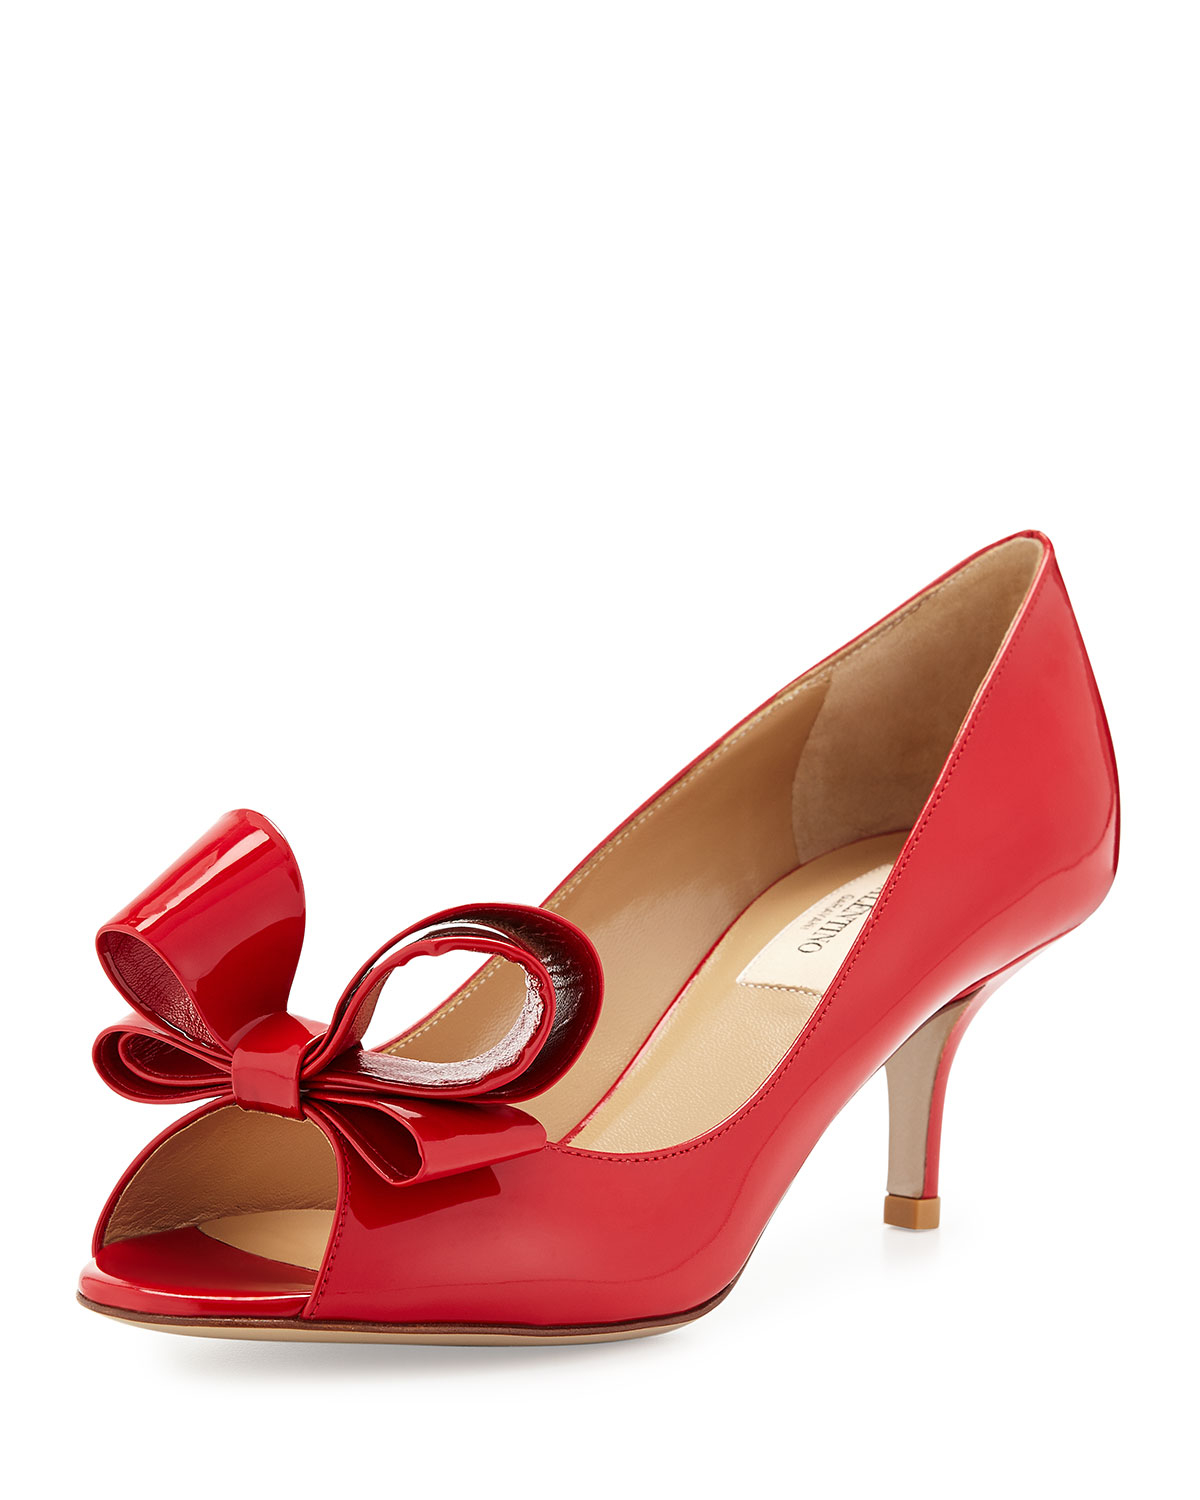 Low Heel Red Pumps - Qu Heel